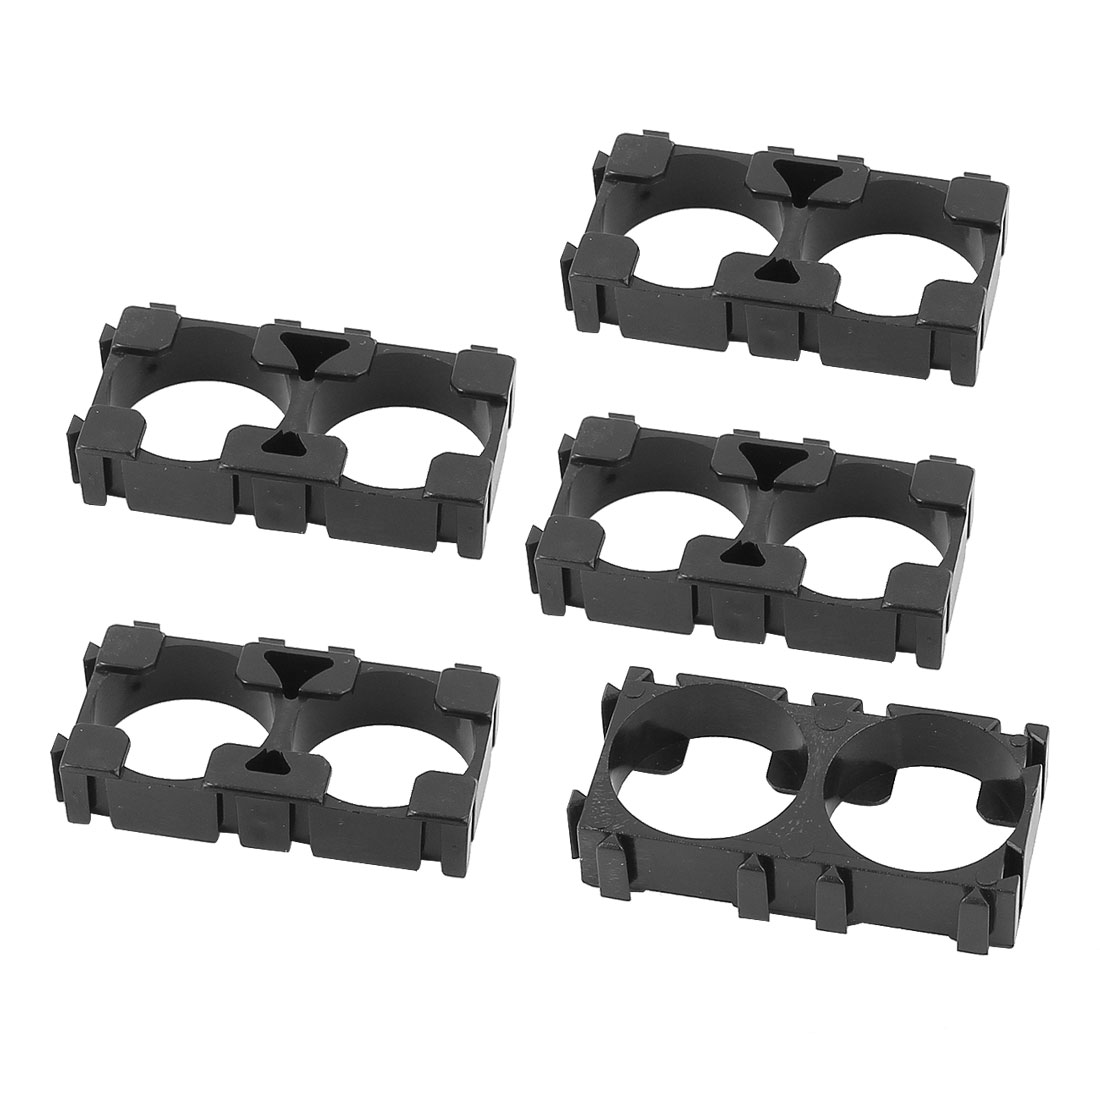 5 Pcs 18650 Lithium Cell Battery Dual Holder Bracket for DIY Battery Pack